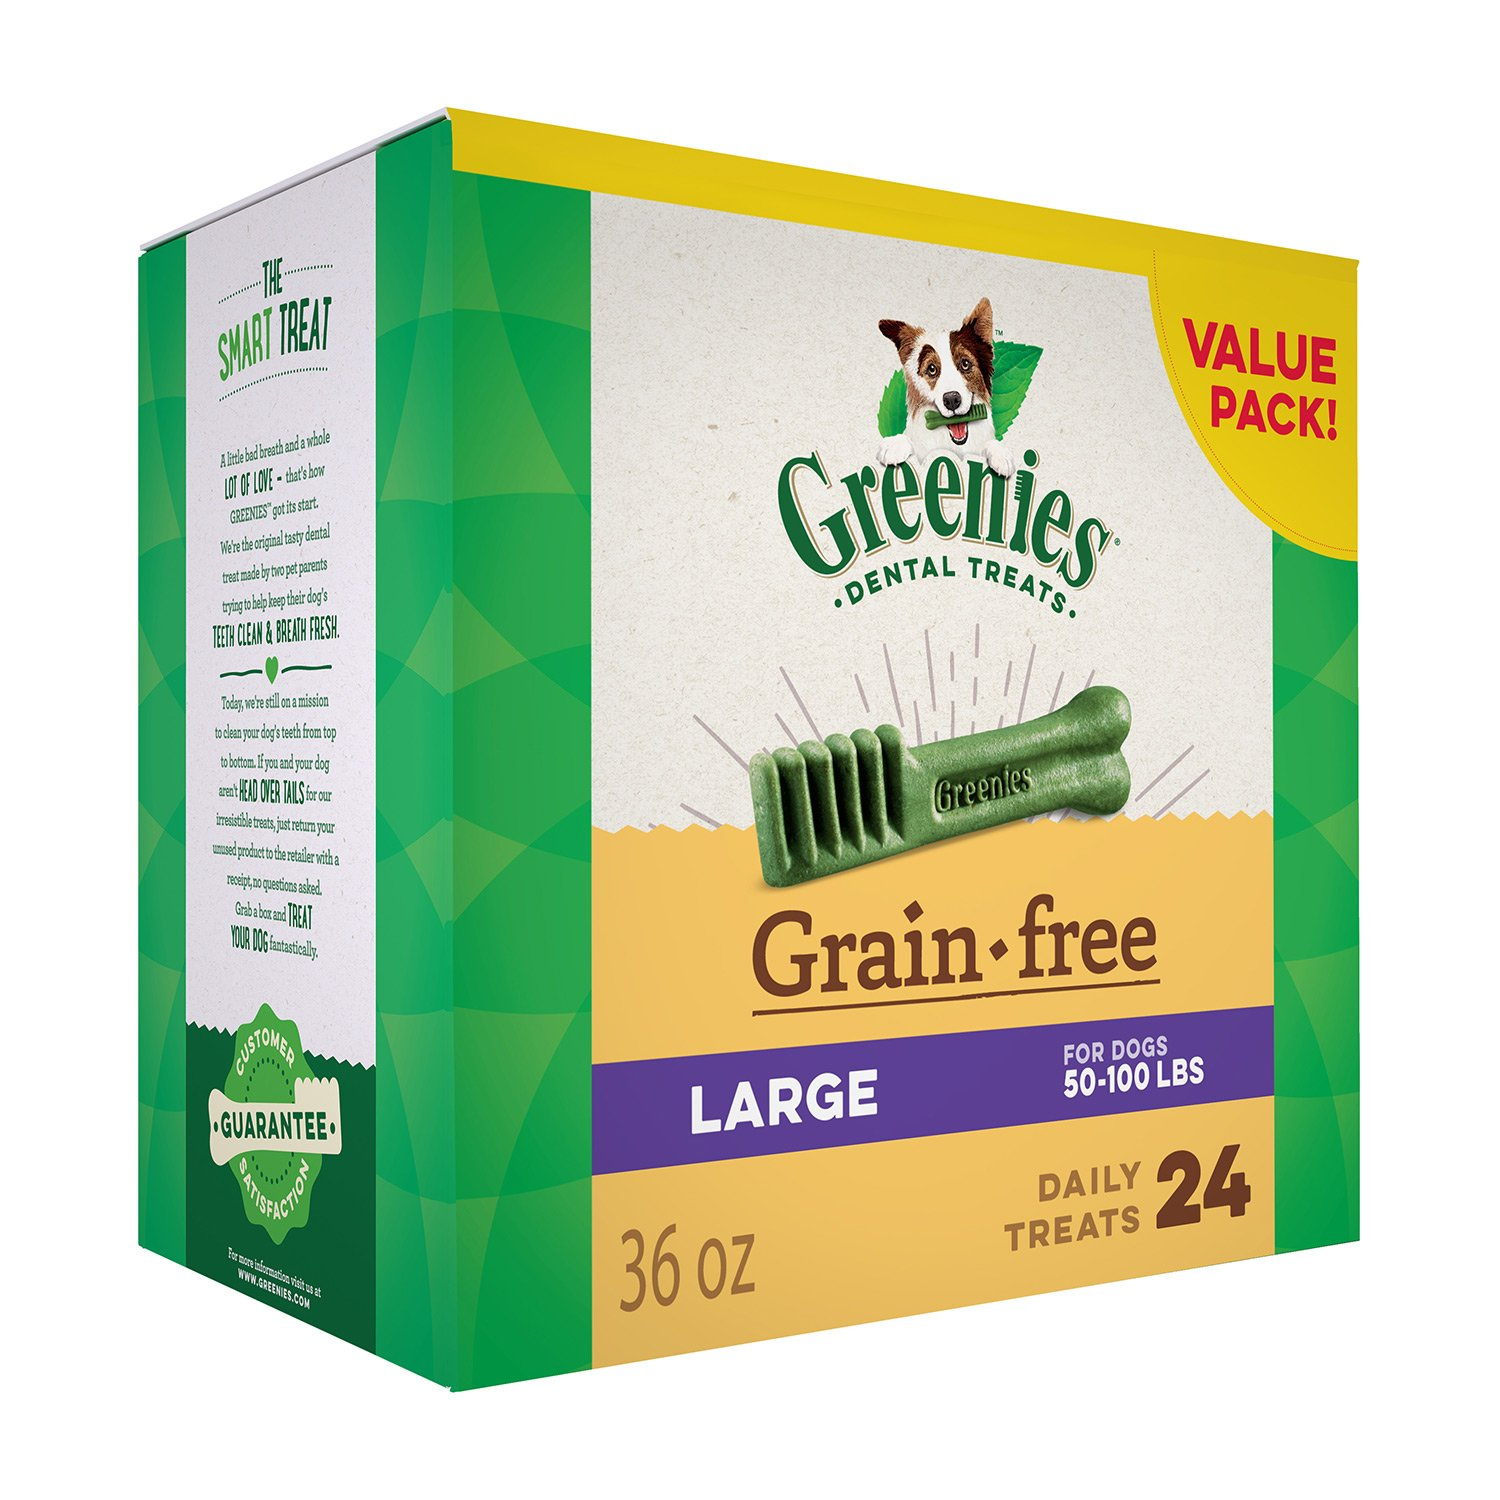 Greenies Grain Free Large Dental Dog Treats, 36 oz. Pack (24 Treats)